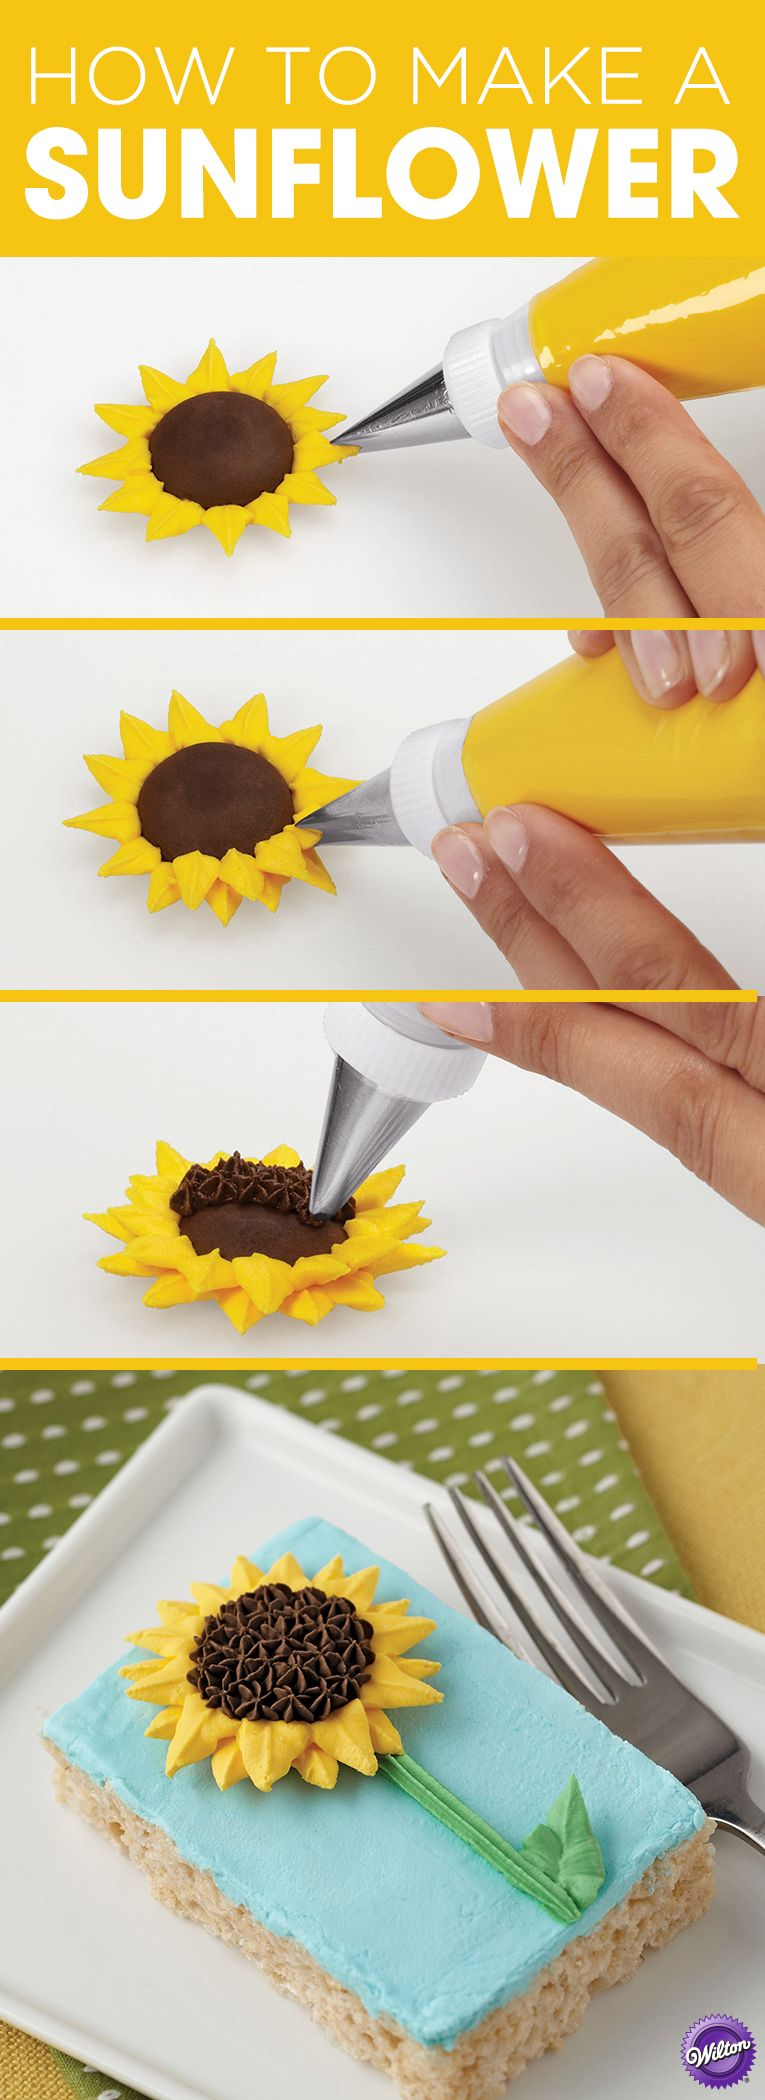 How to Pipe a Sunflower -   21 cake decor step by step ideas